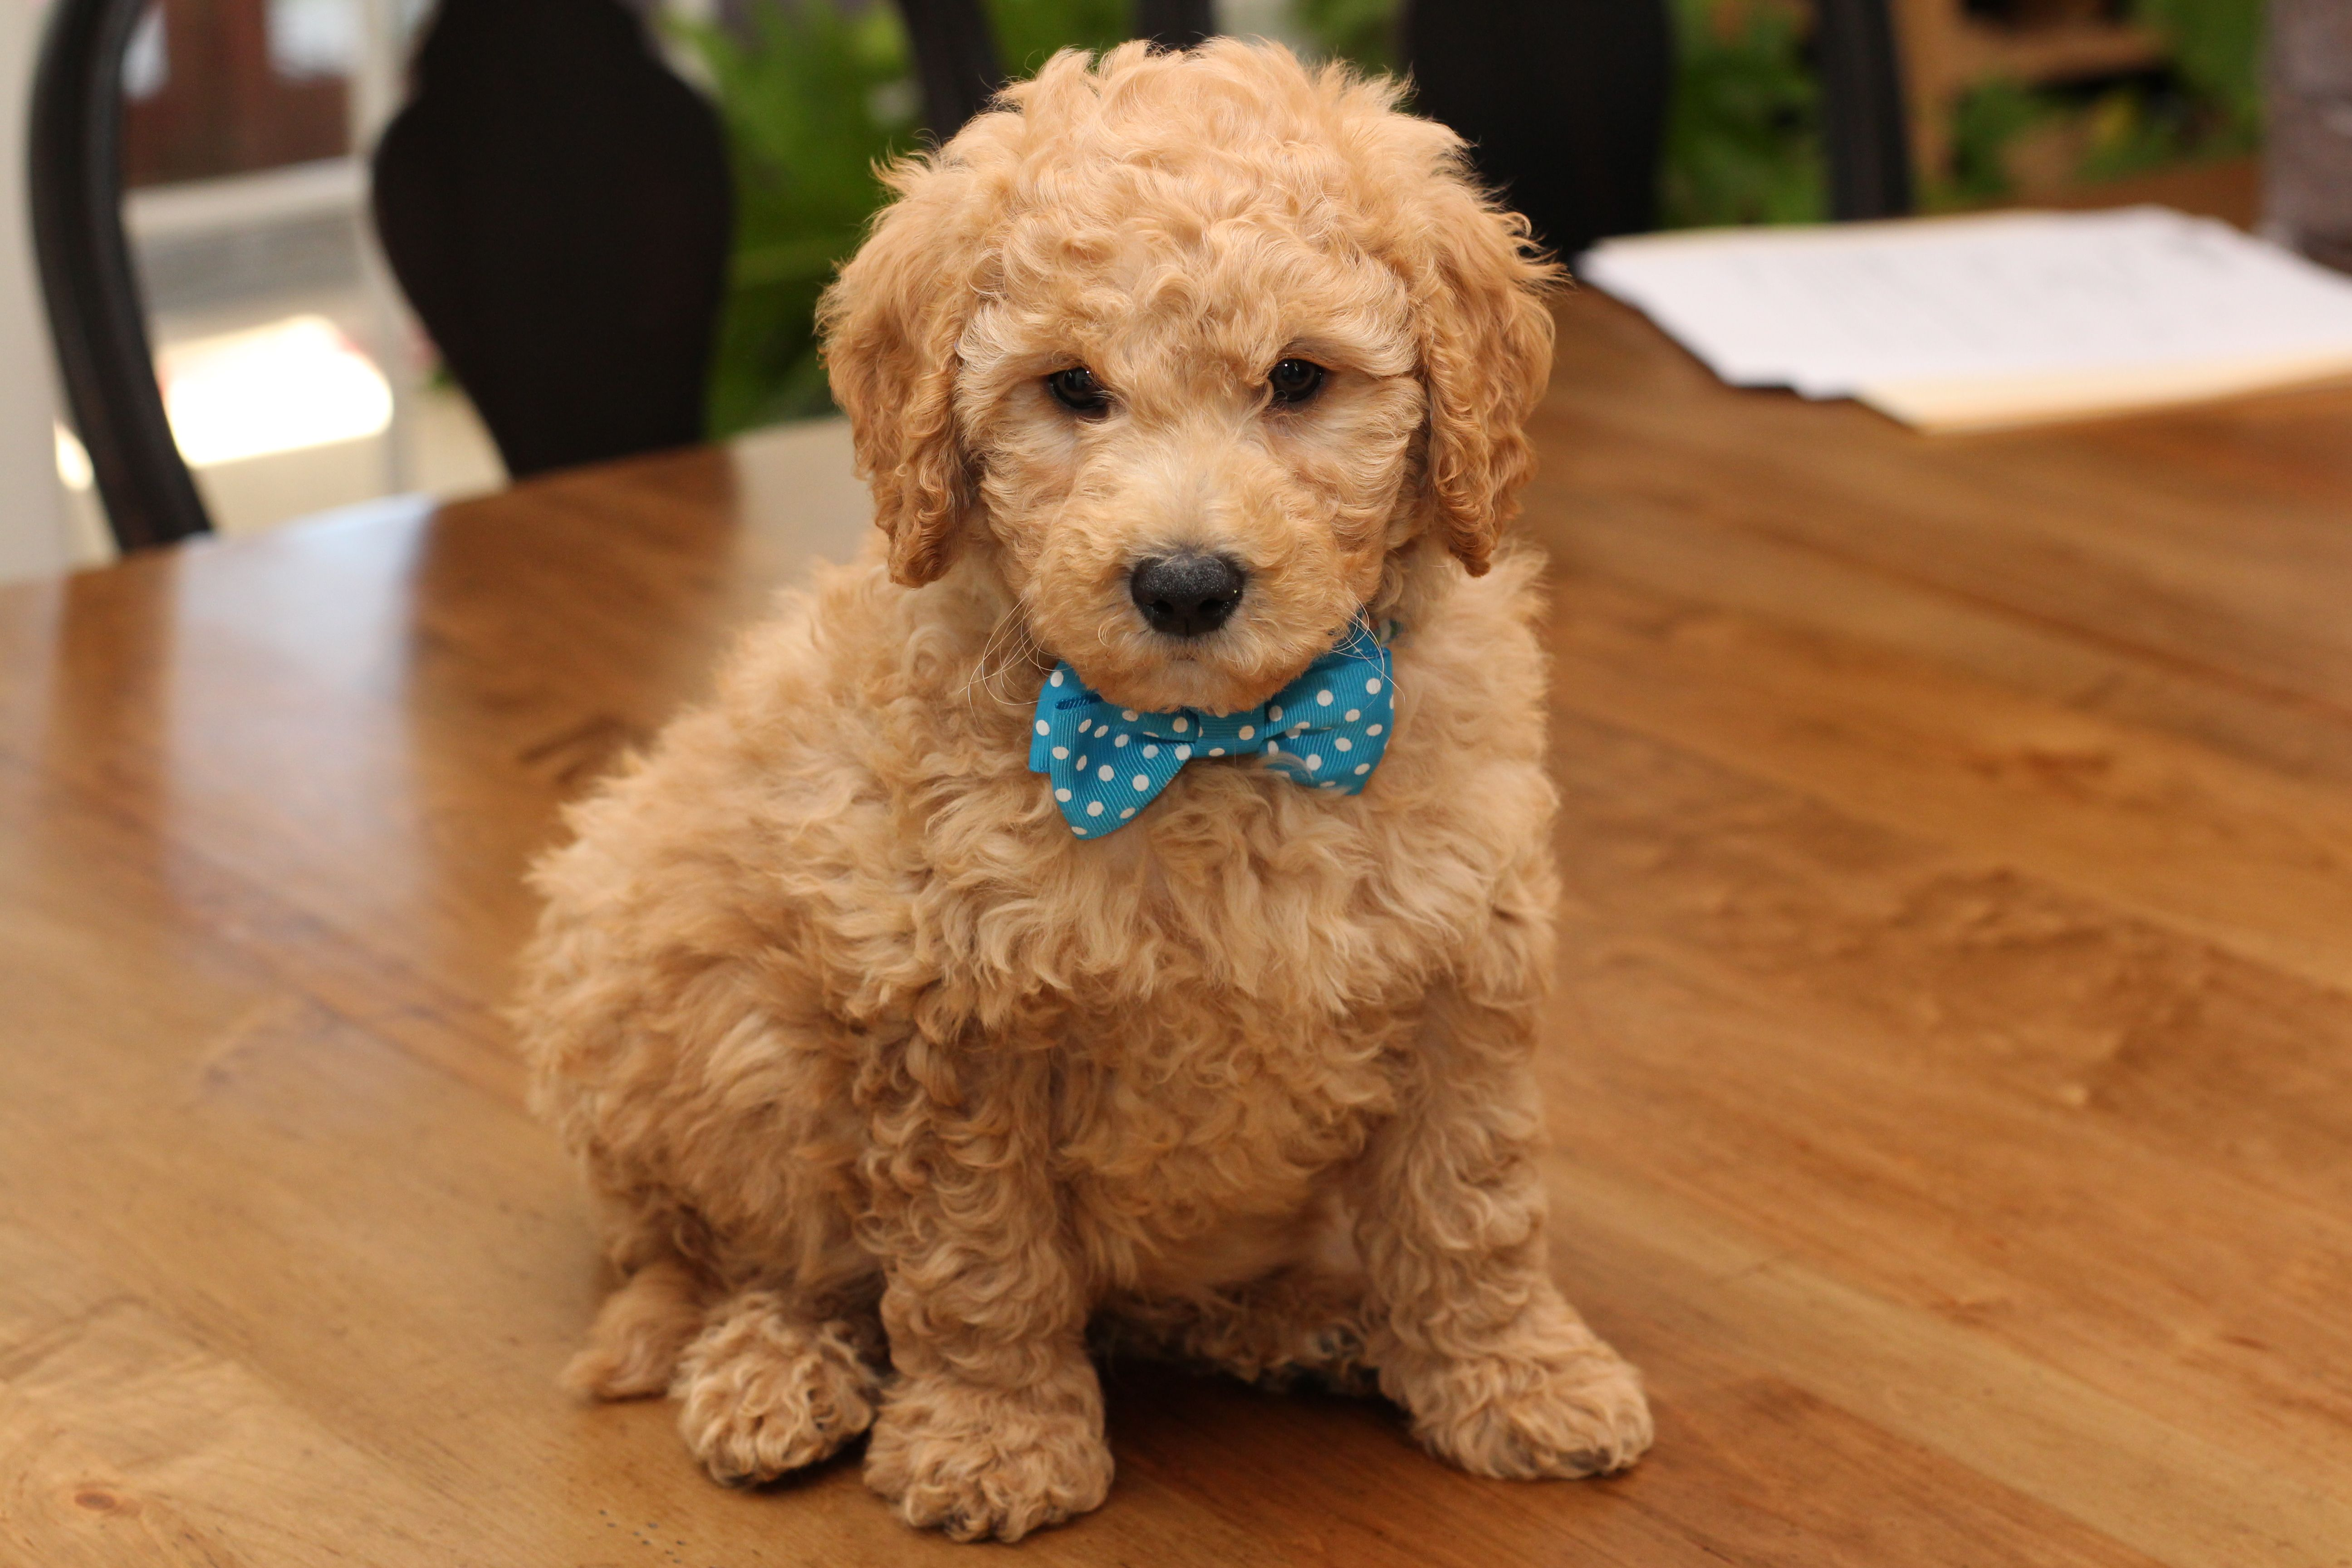 River Valley Goldendoodles Puppy Breeder In Ny Near Pa Near Nyc Goldendoodle Puppies Mini Goldendoodle Puppies